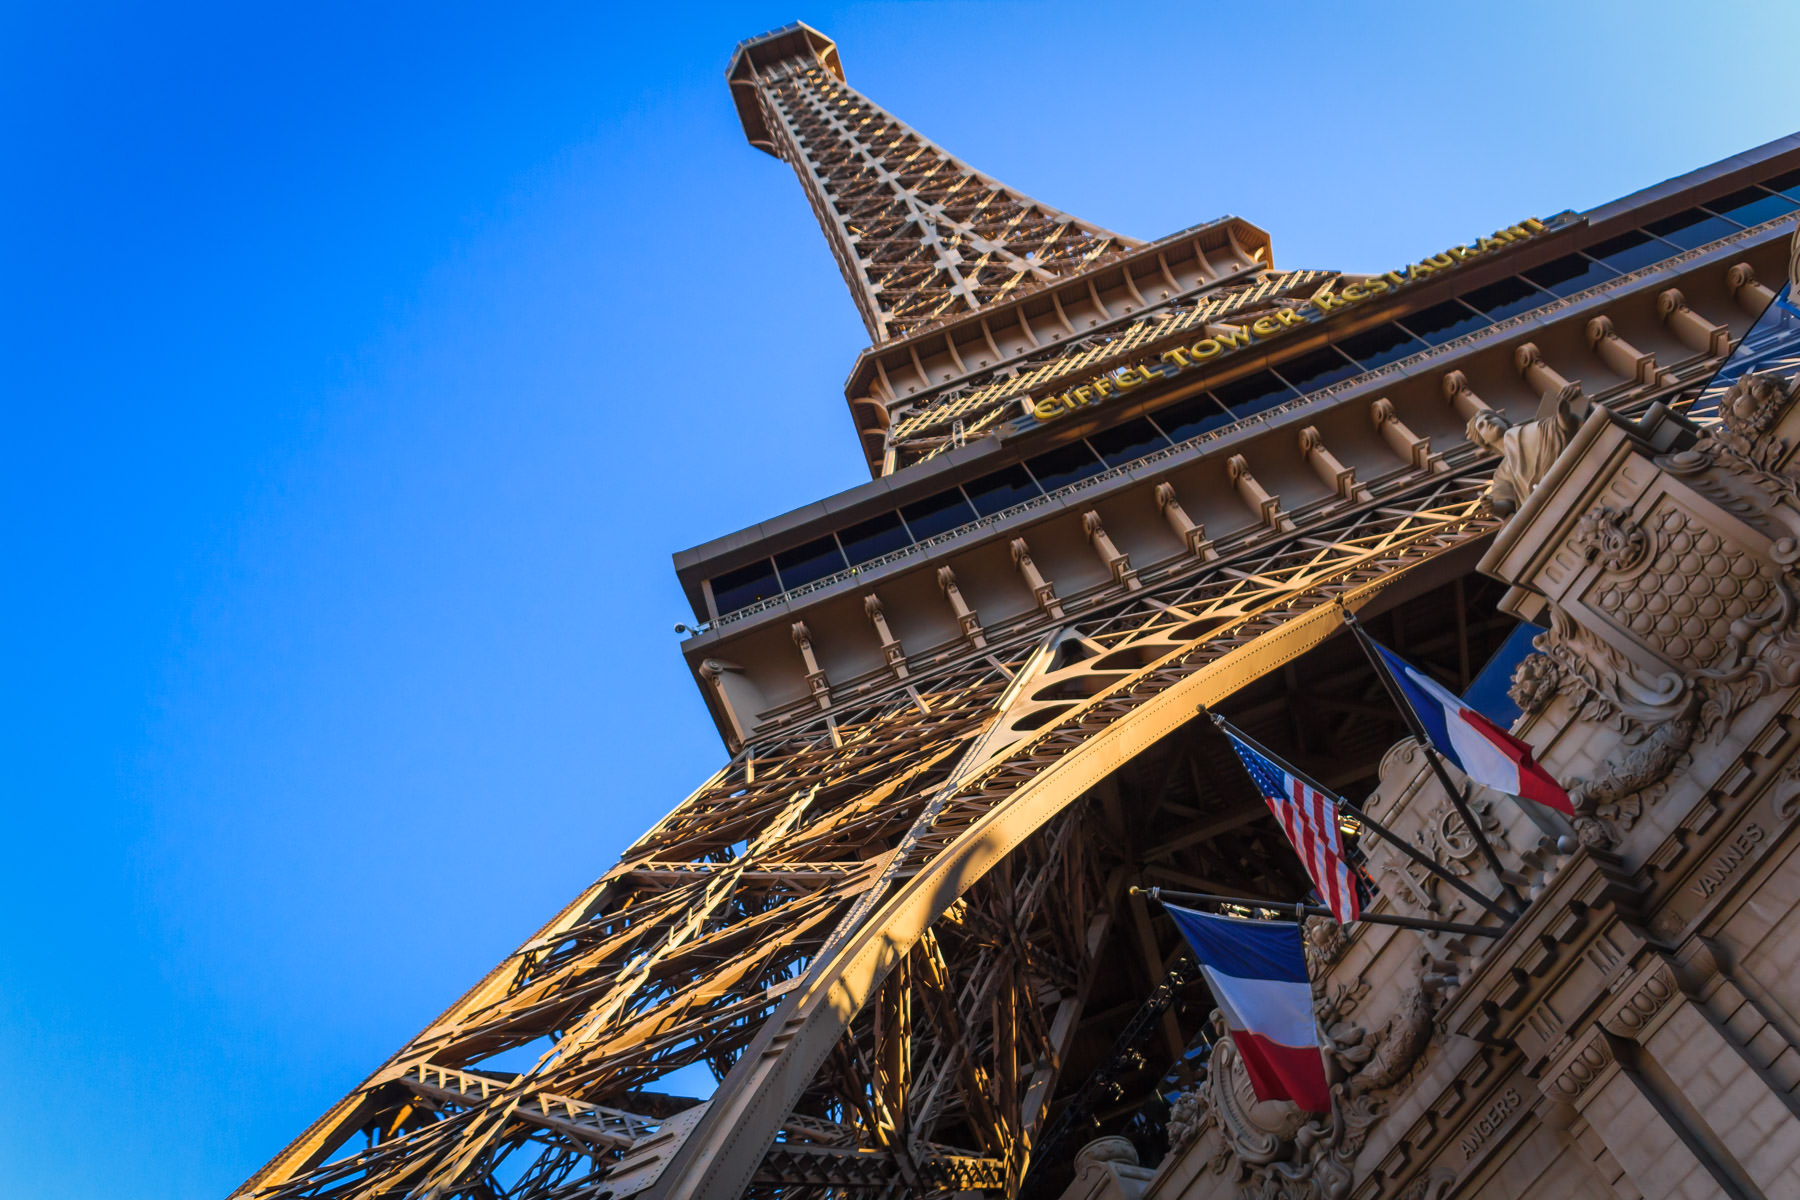 Paris Las Vegas' reproduction of the Eiffel Tower rises into the clear sky of the Nevada desert.